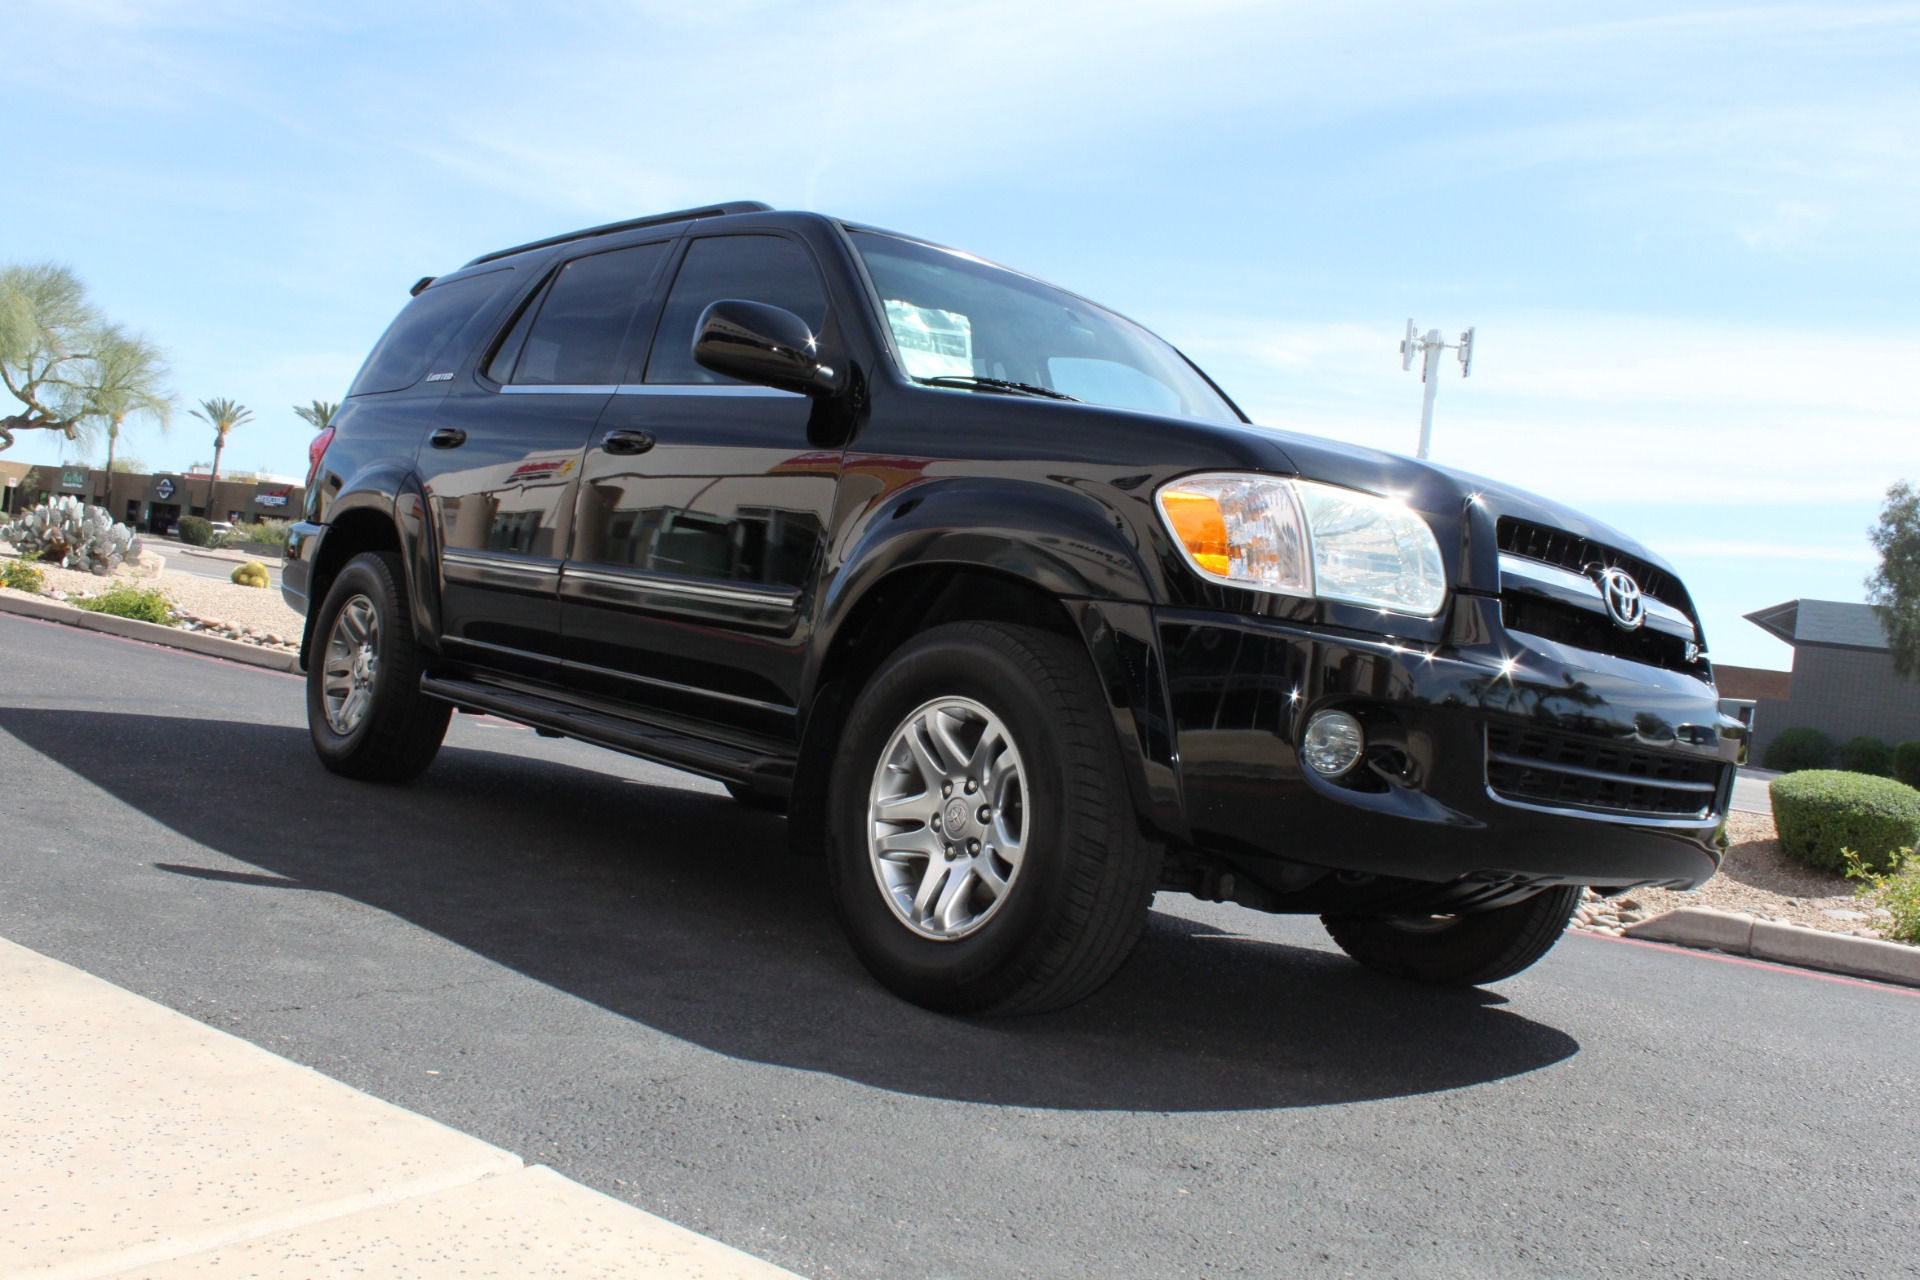 Used-2005-Toyota-Sequoia-Limited-Toyota